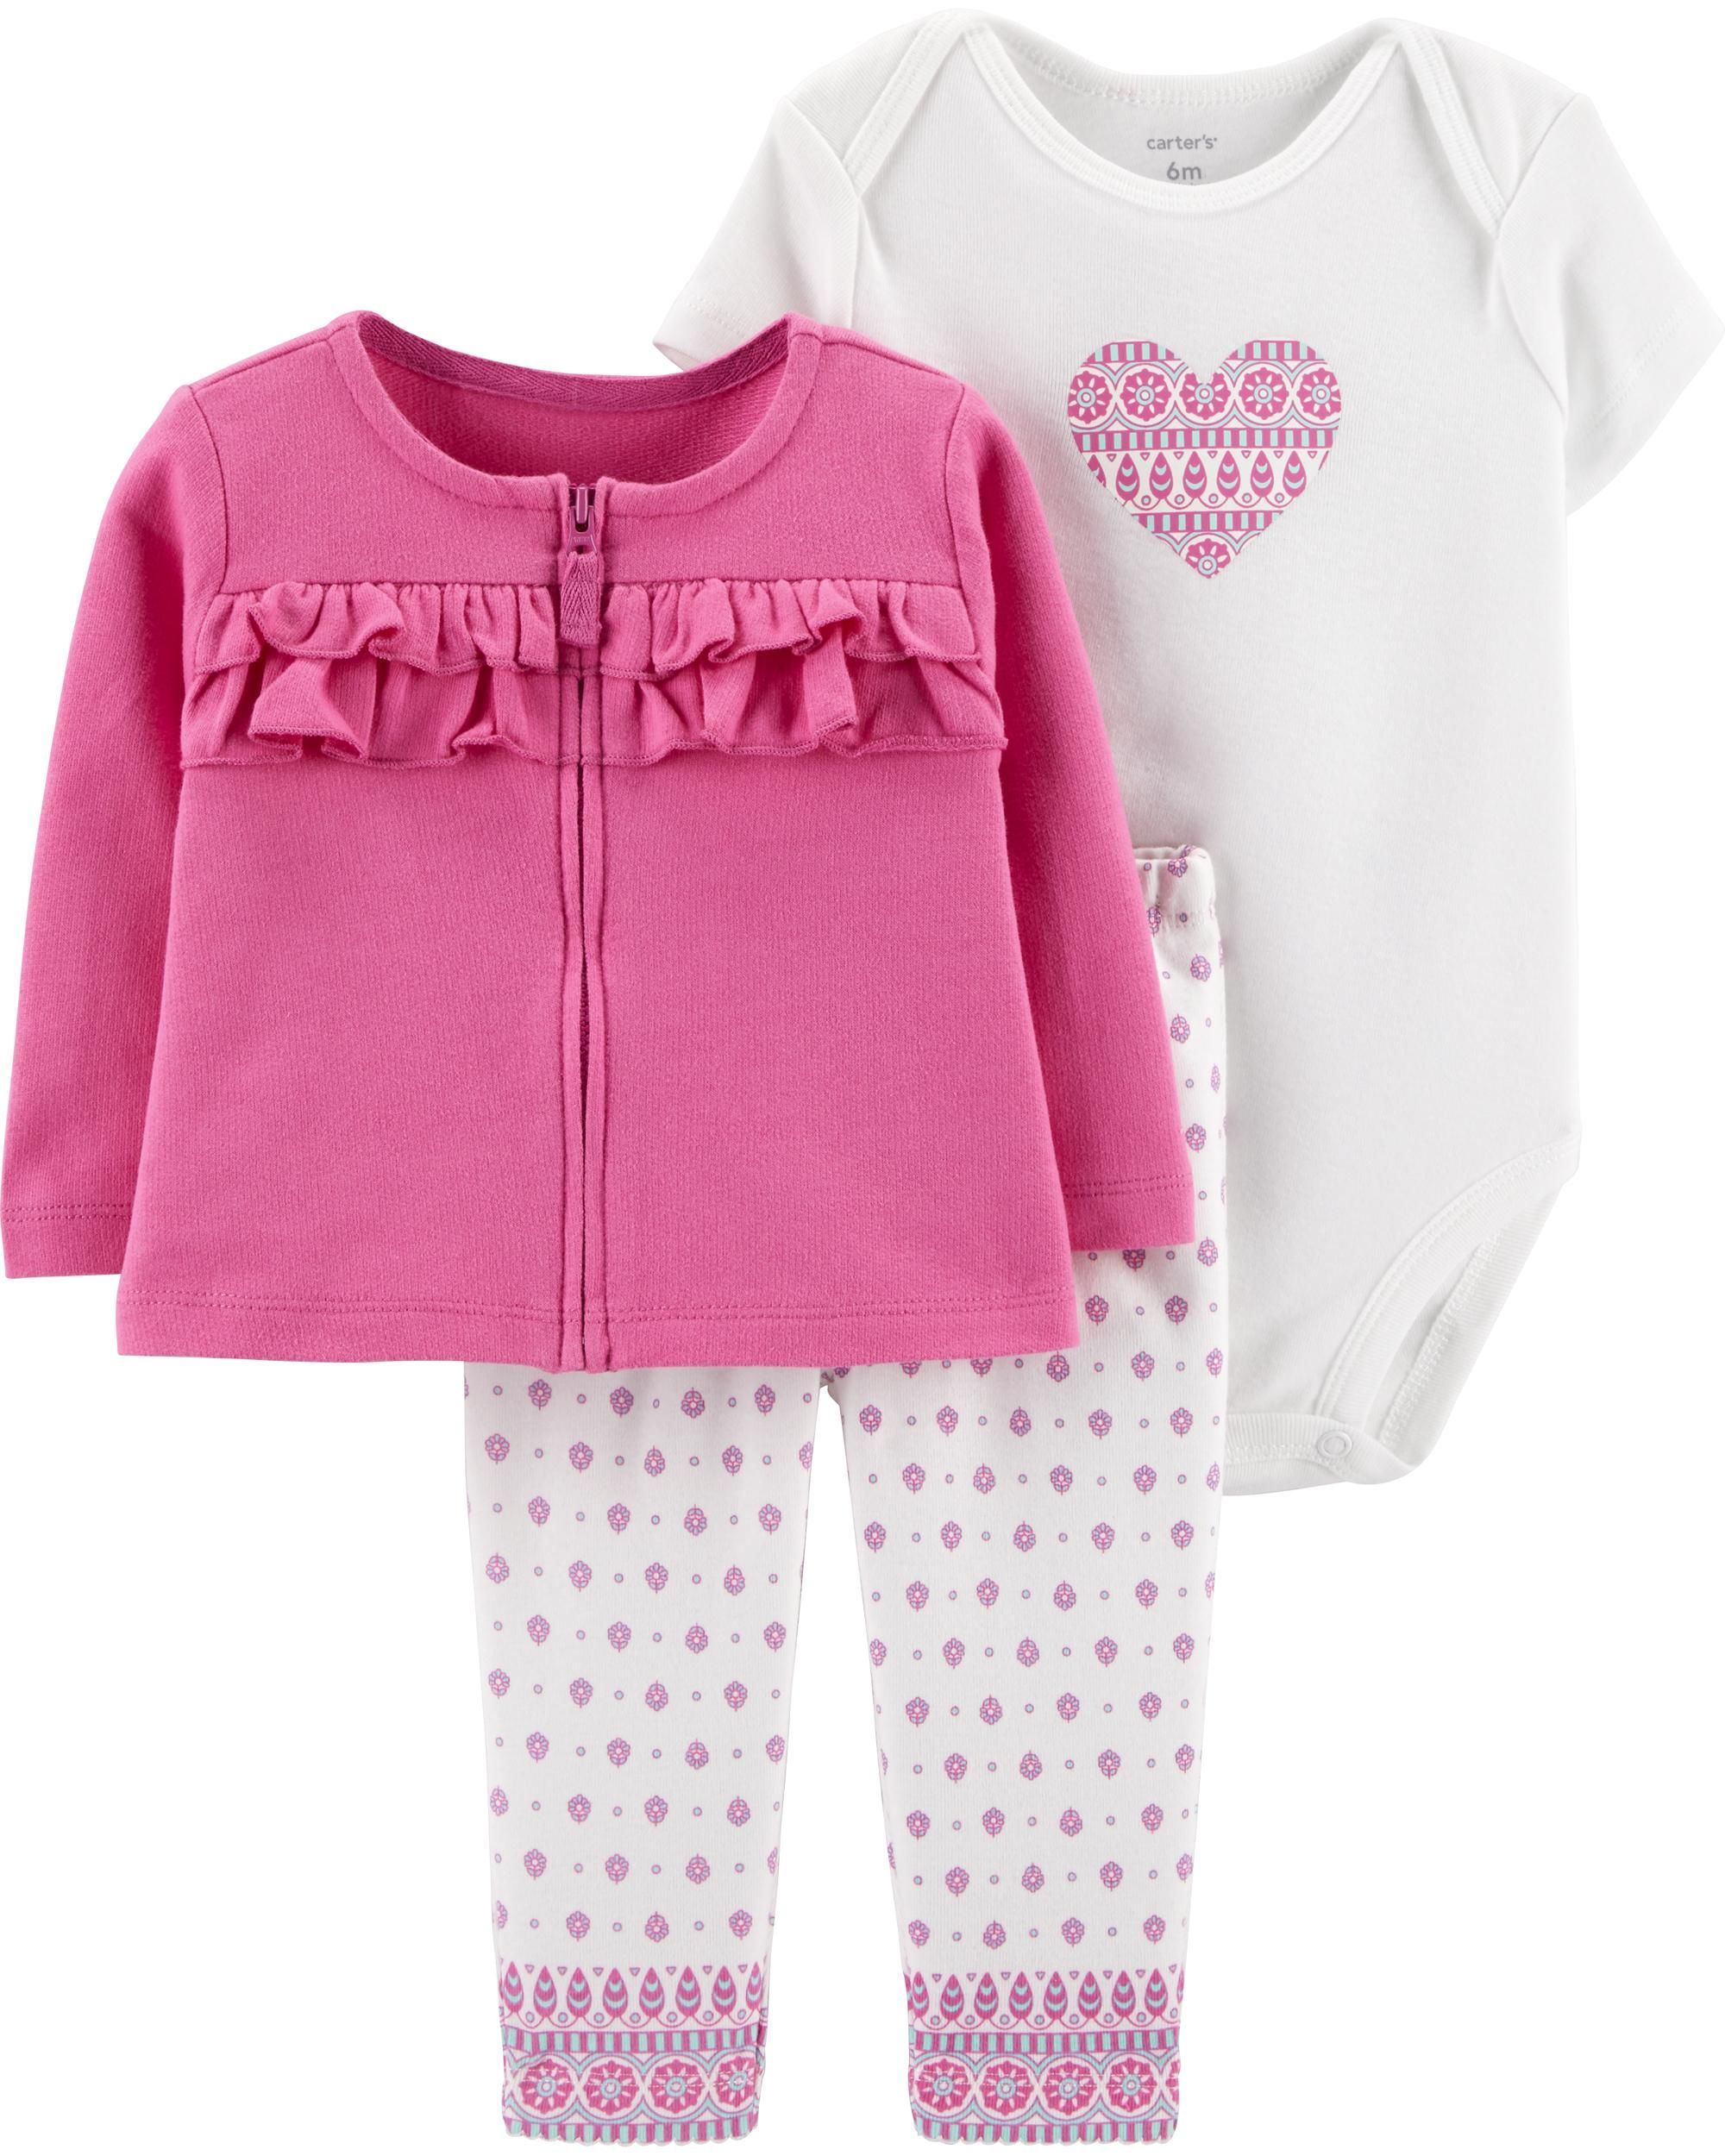 8e1699a0 3-Piece Heart Cardigan Set | baby ideas | Striped bodysuit, Floral ...